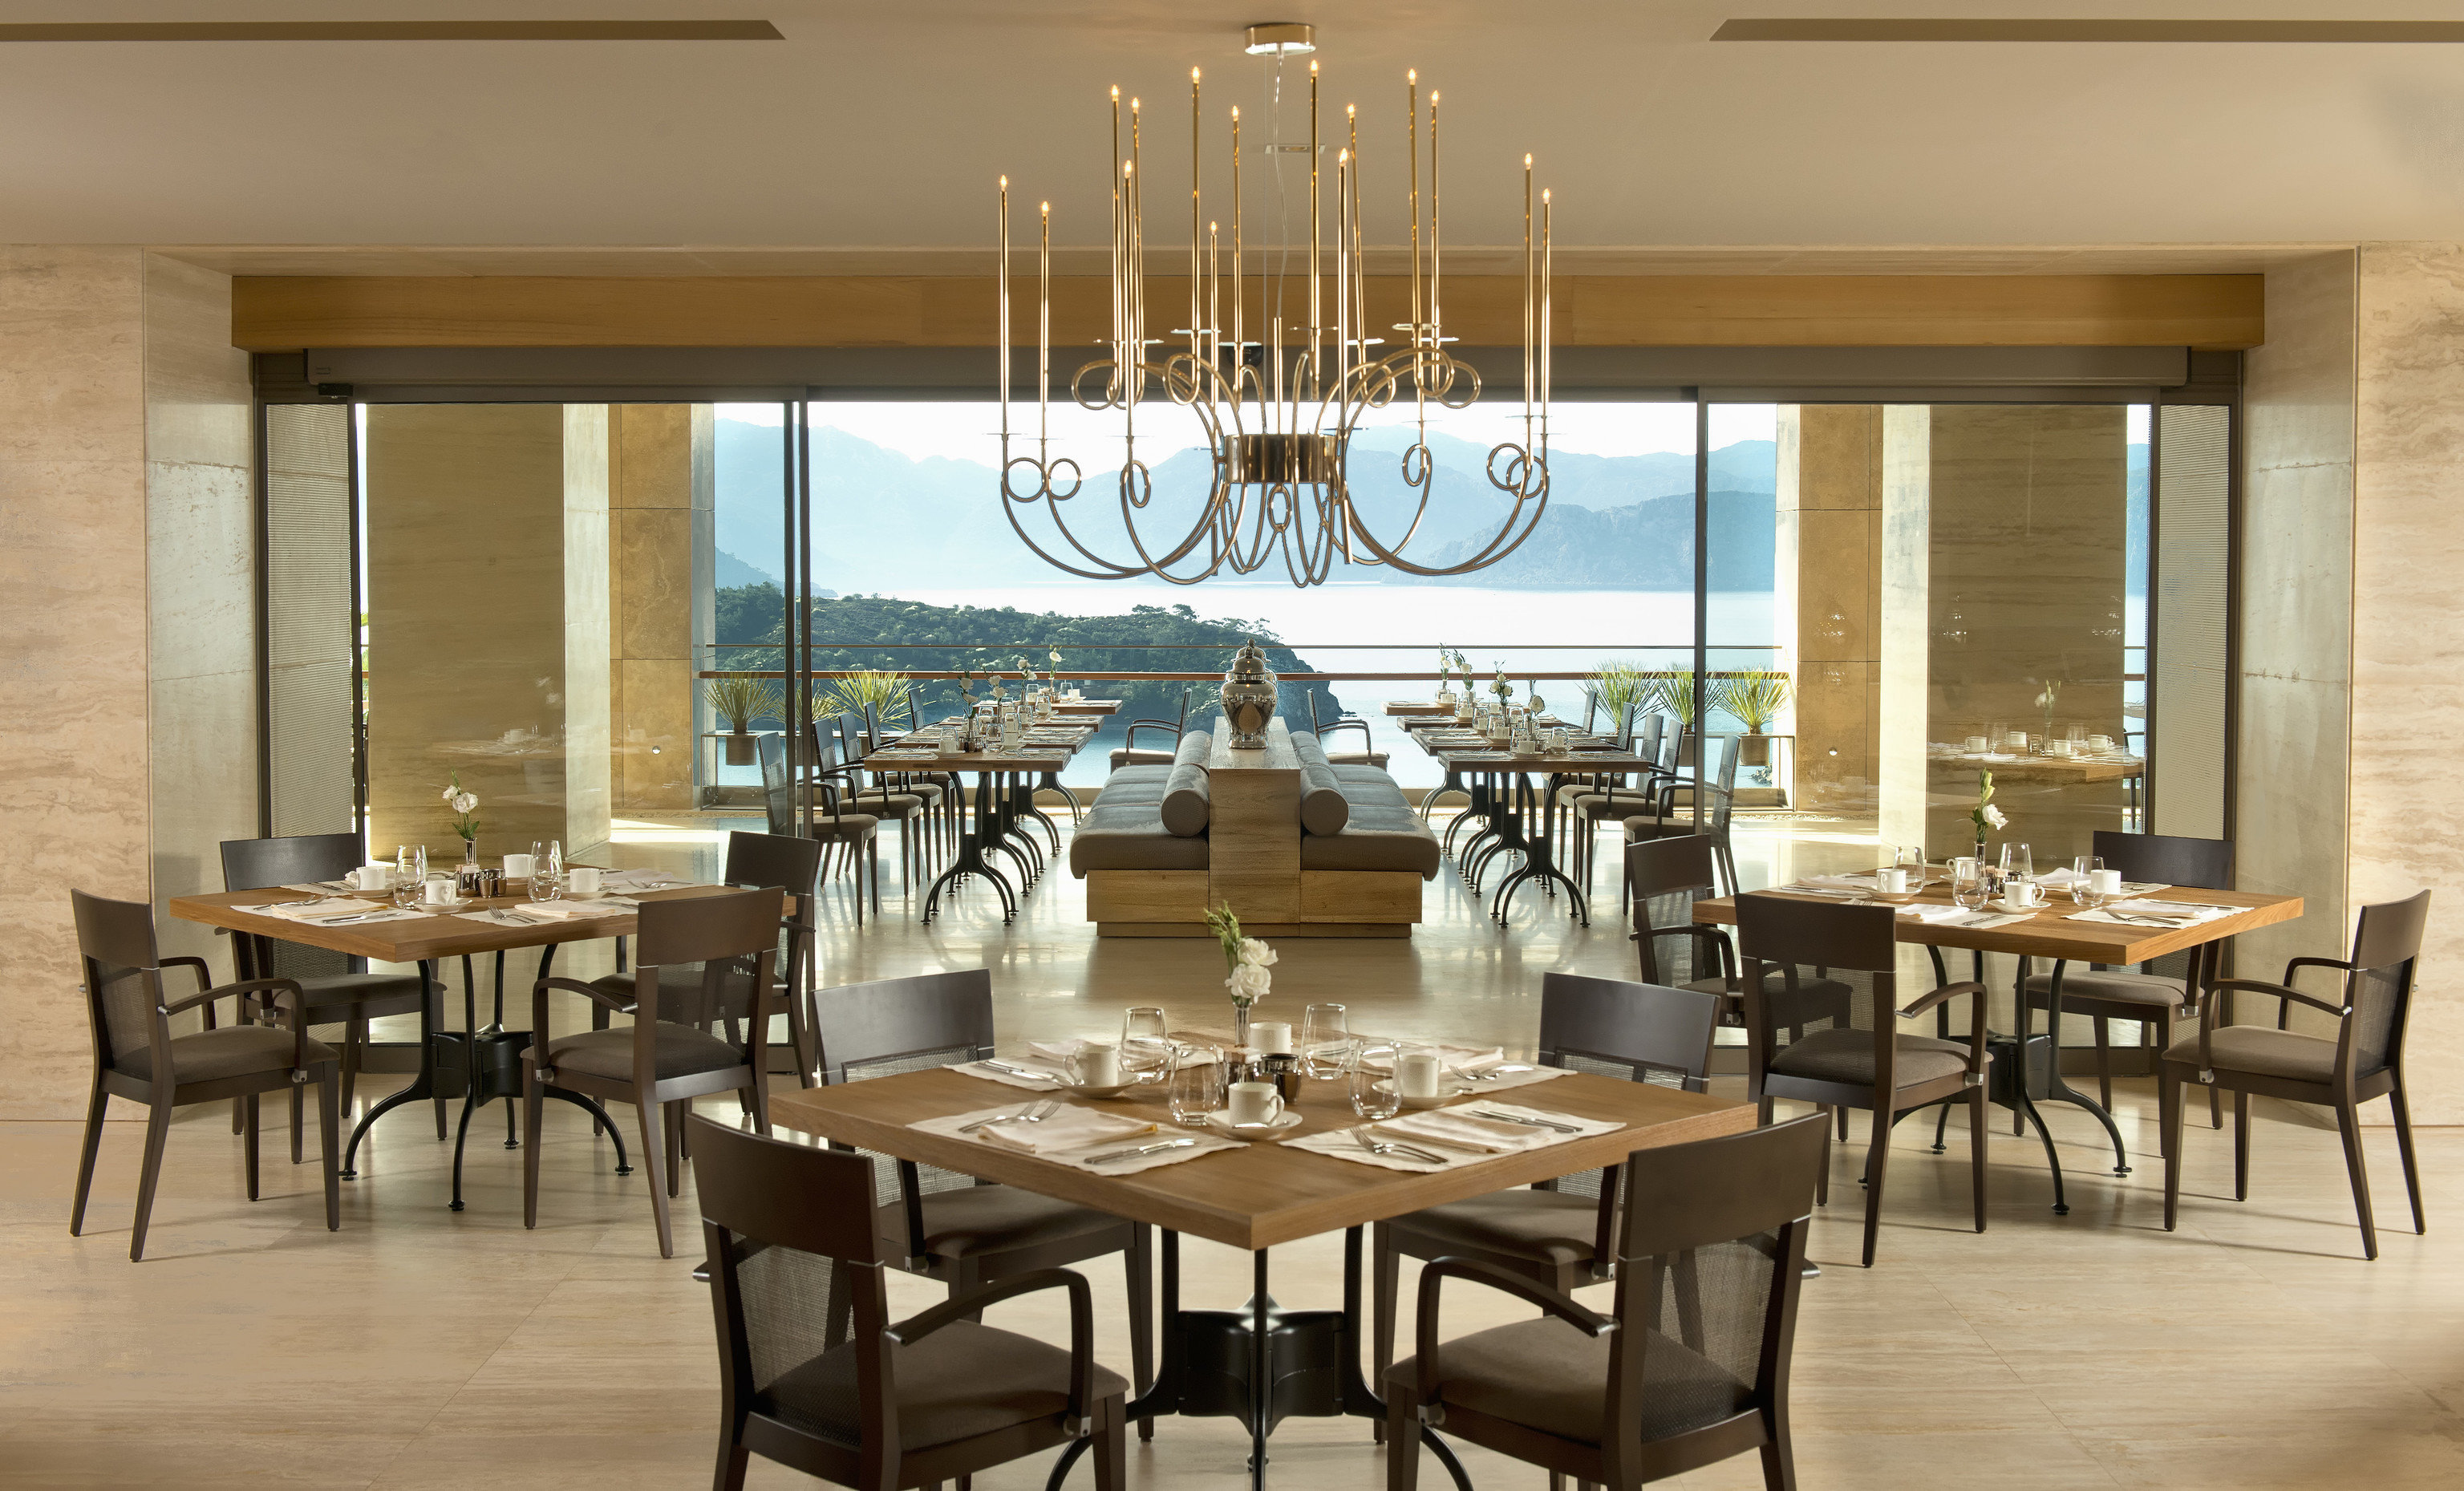 chair property restaurant Dining function hall dining table